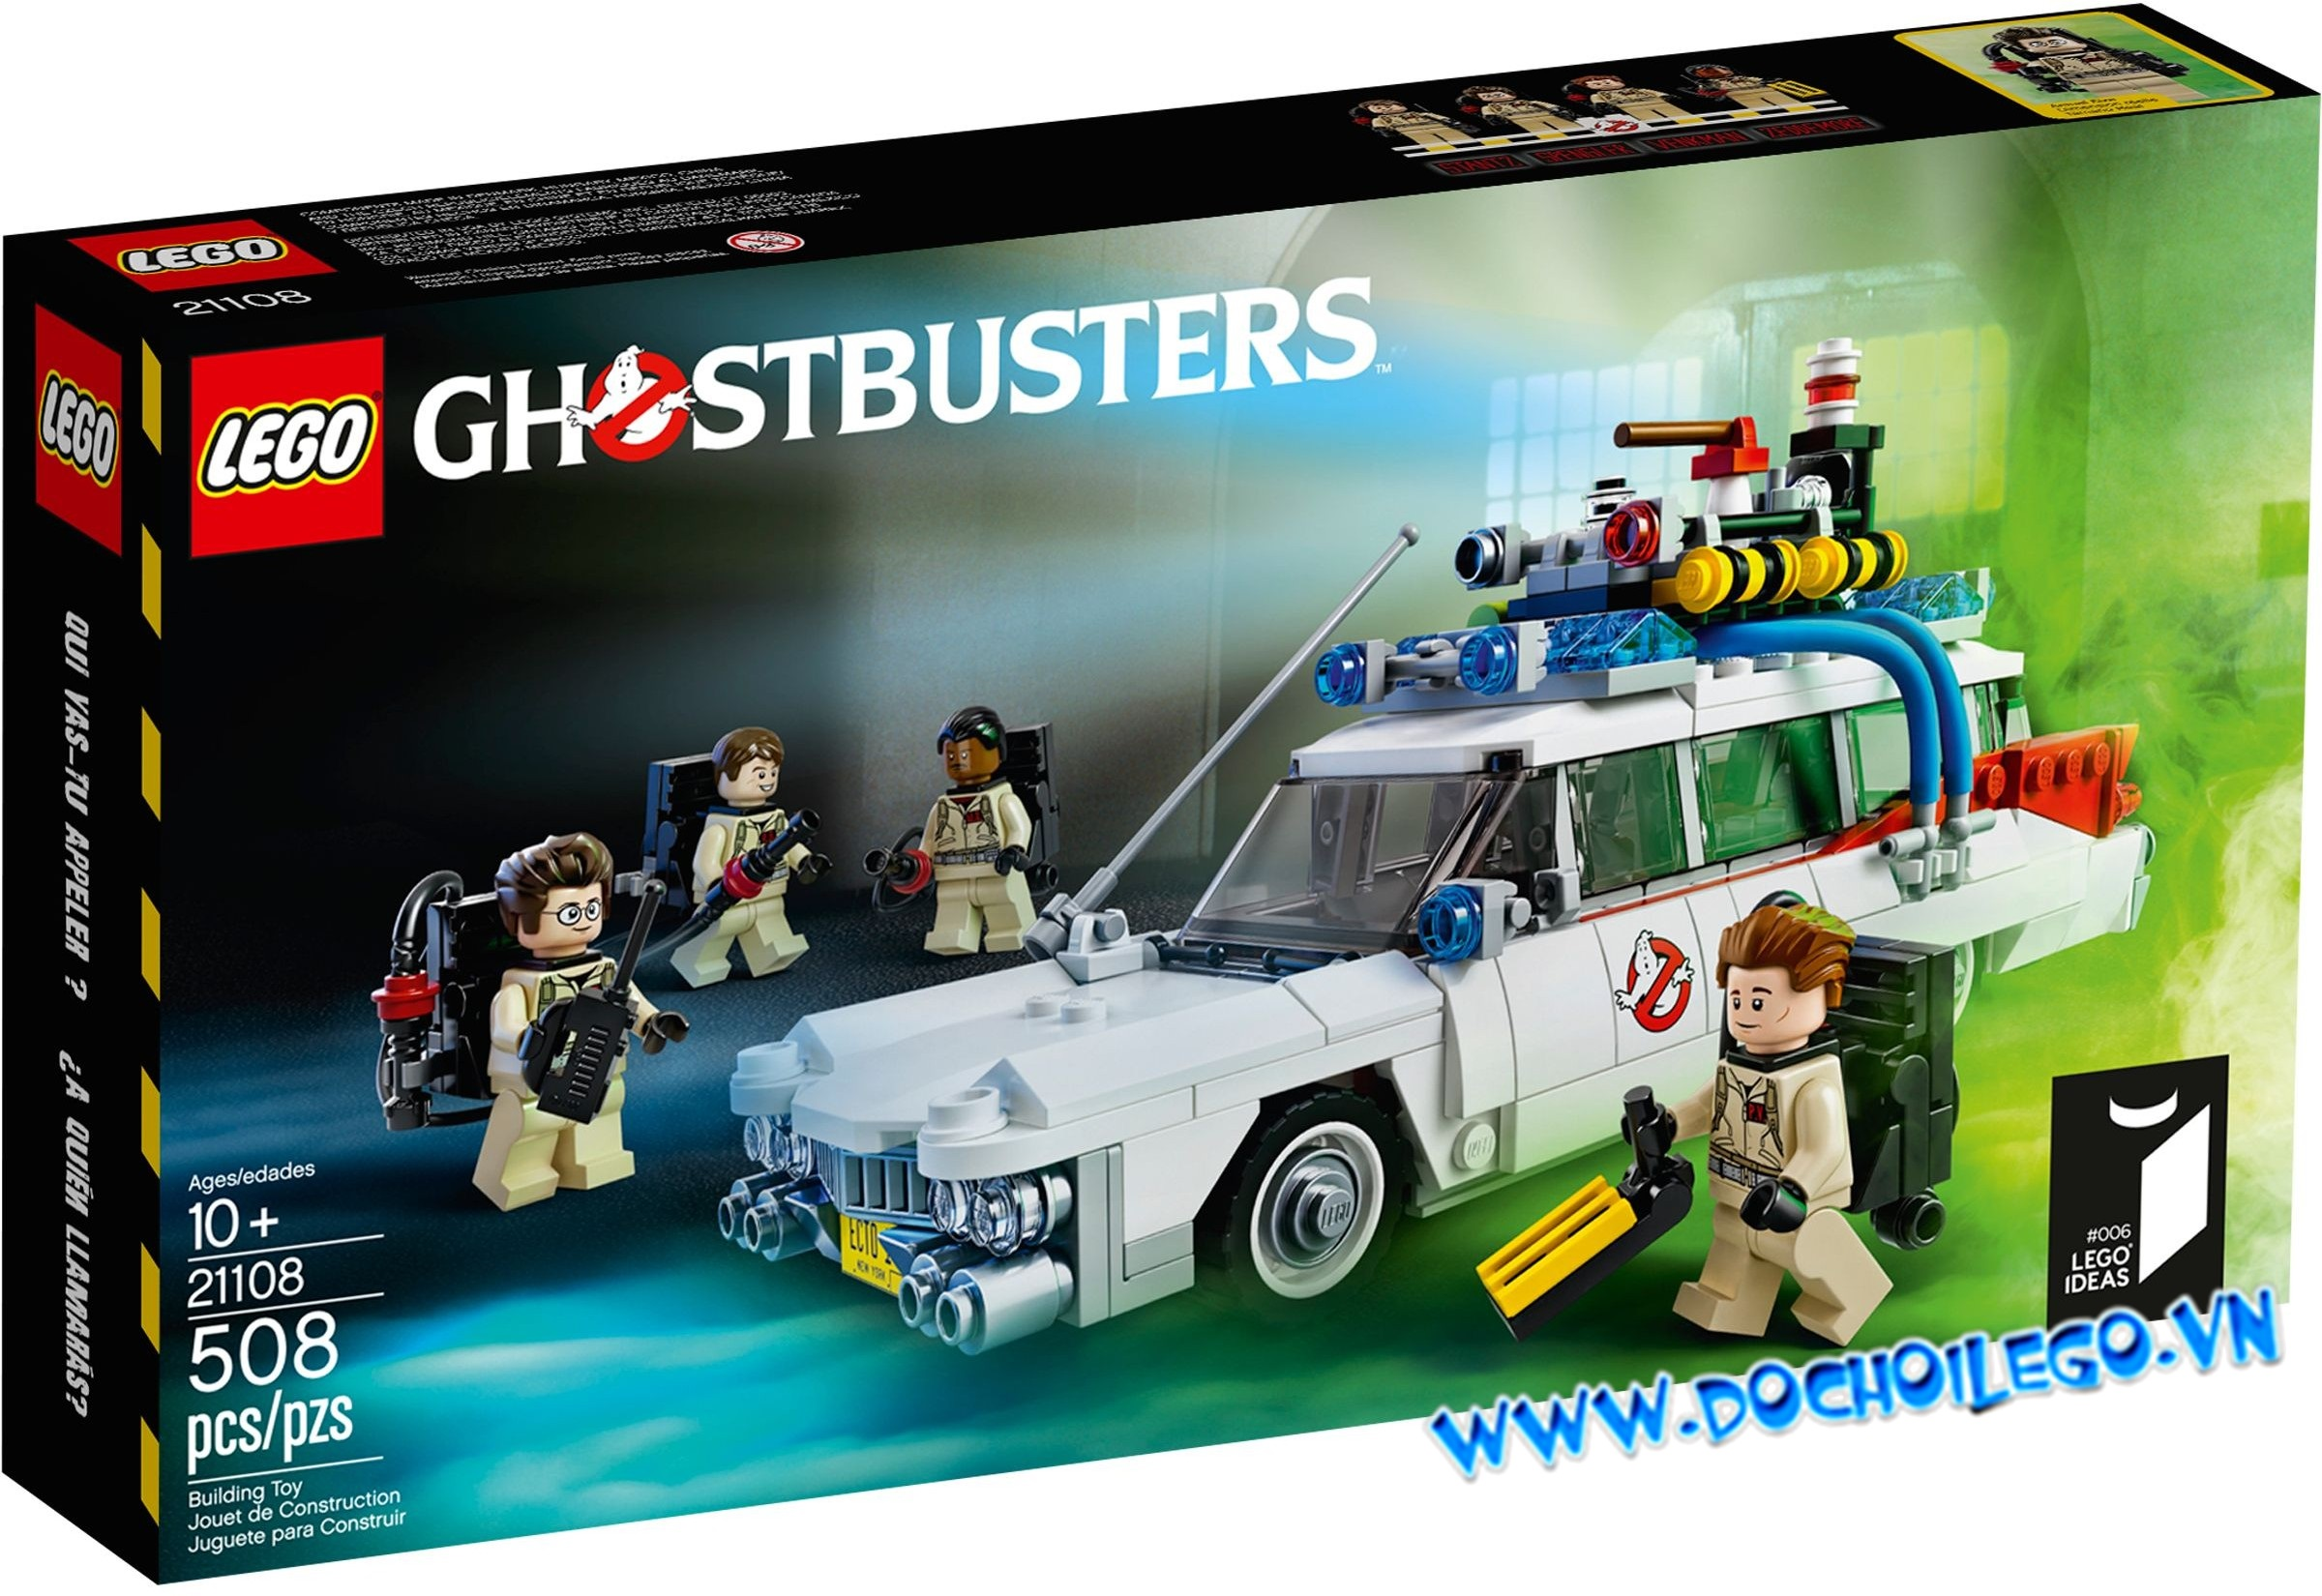 21108 LEGO® IDEAS Ghostbusters Ecto-1